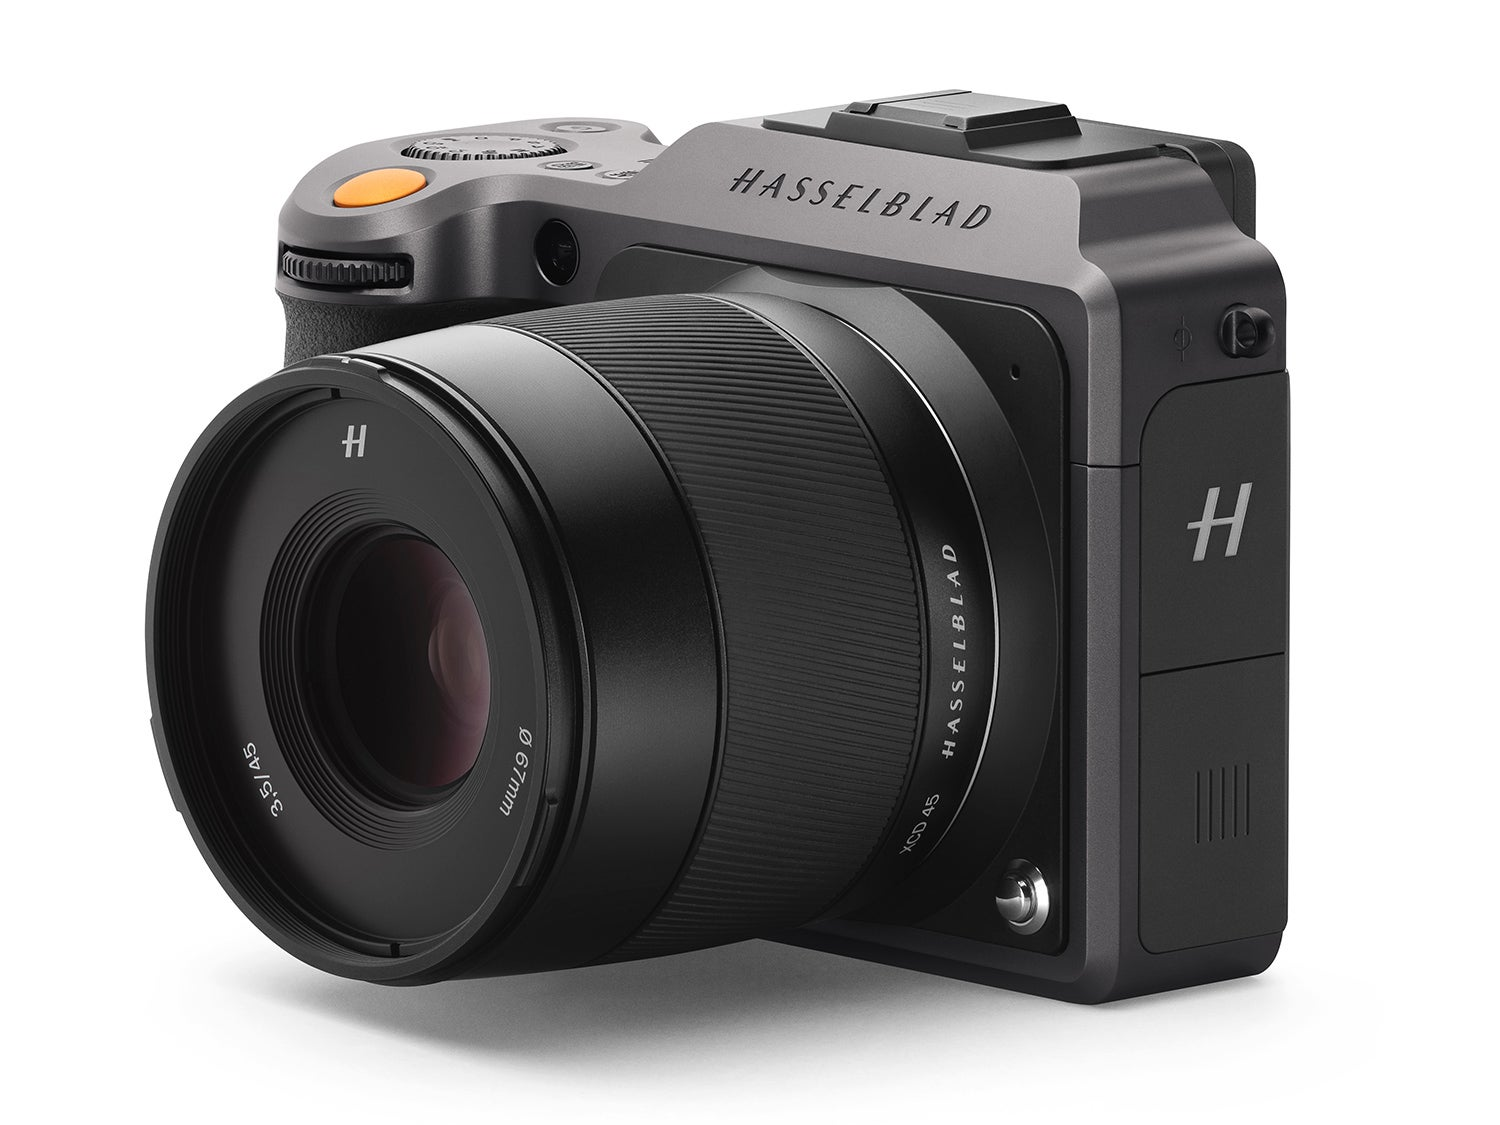 The Hasselblad XID II-50c medium format camera is faster, cheaper